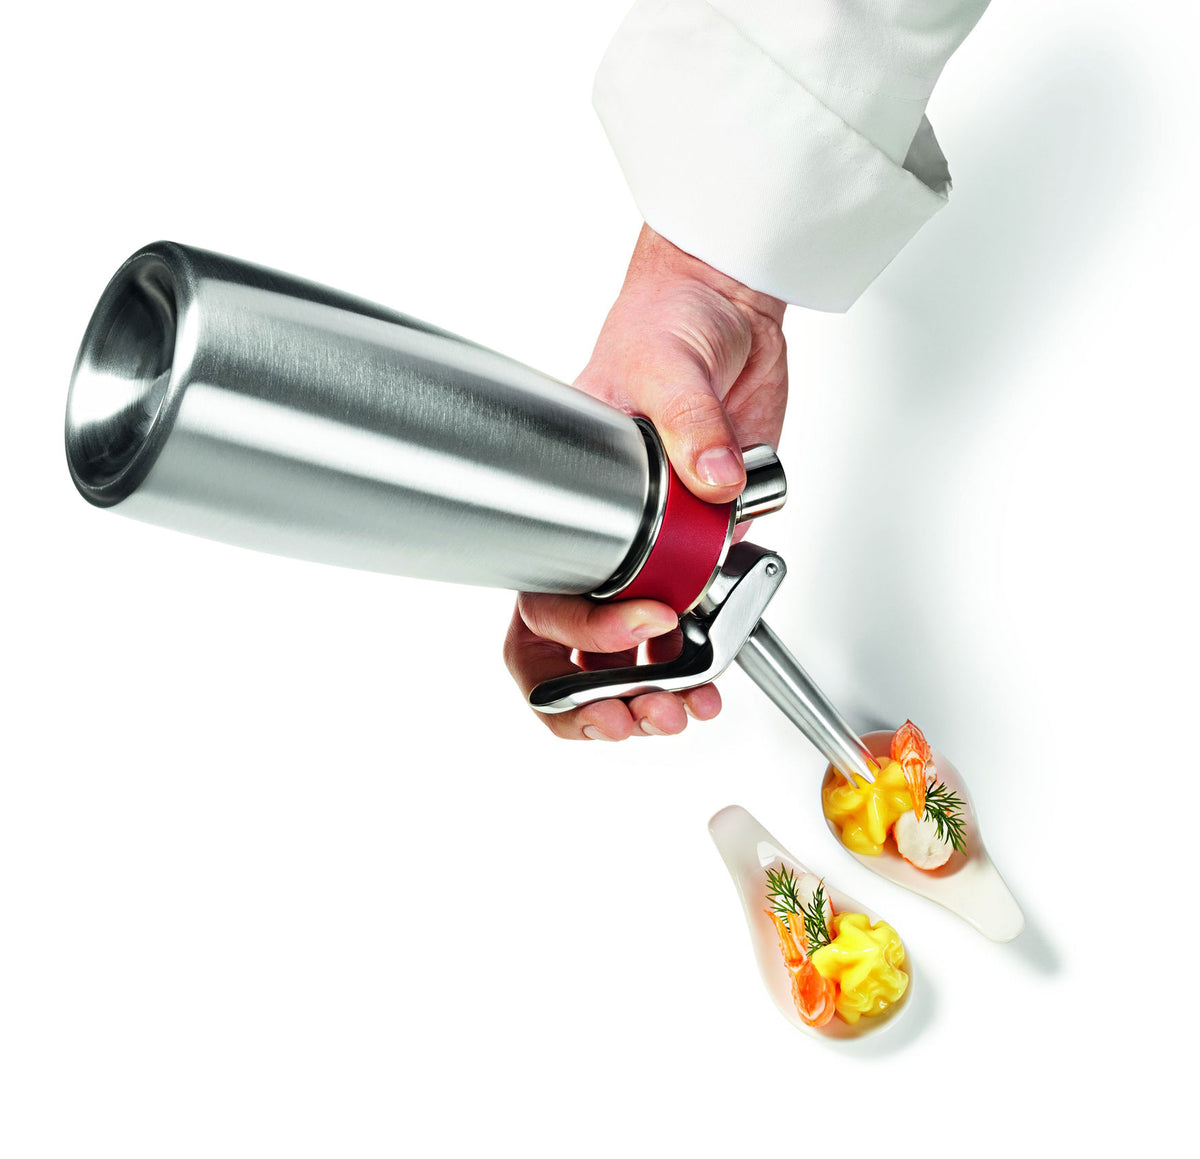 Use a Friendly & Flavored Cream Charger & Prepare Drinks with a Dash of CO2 and N2O Cream Chargers